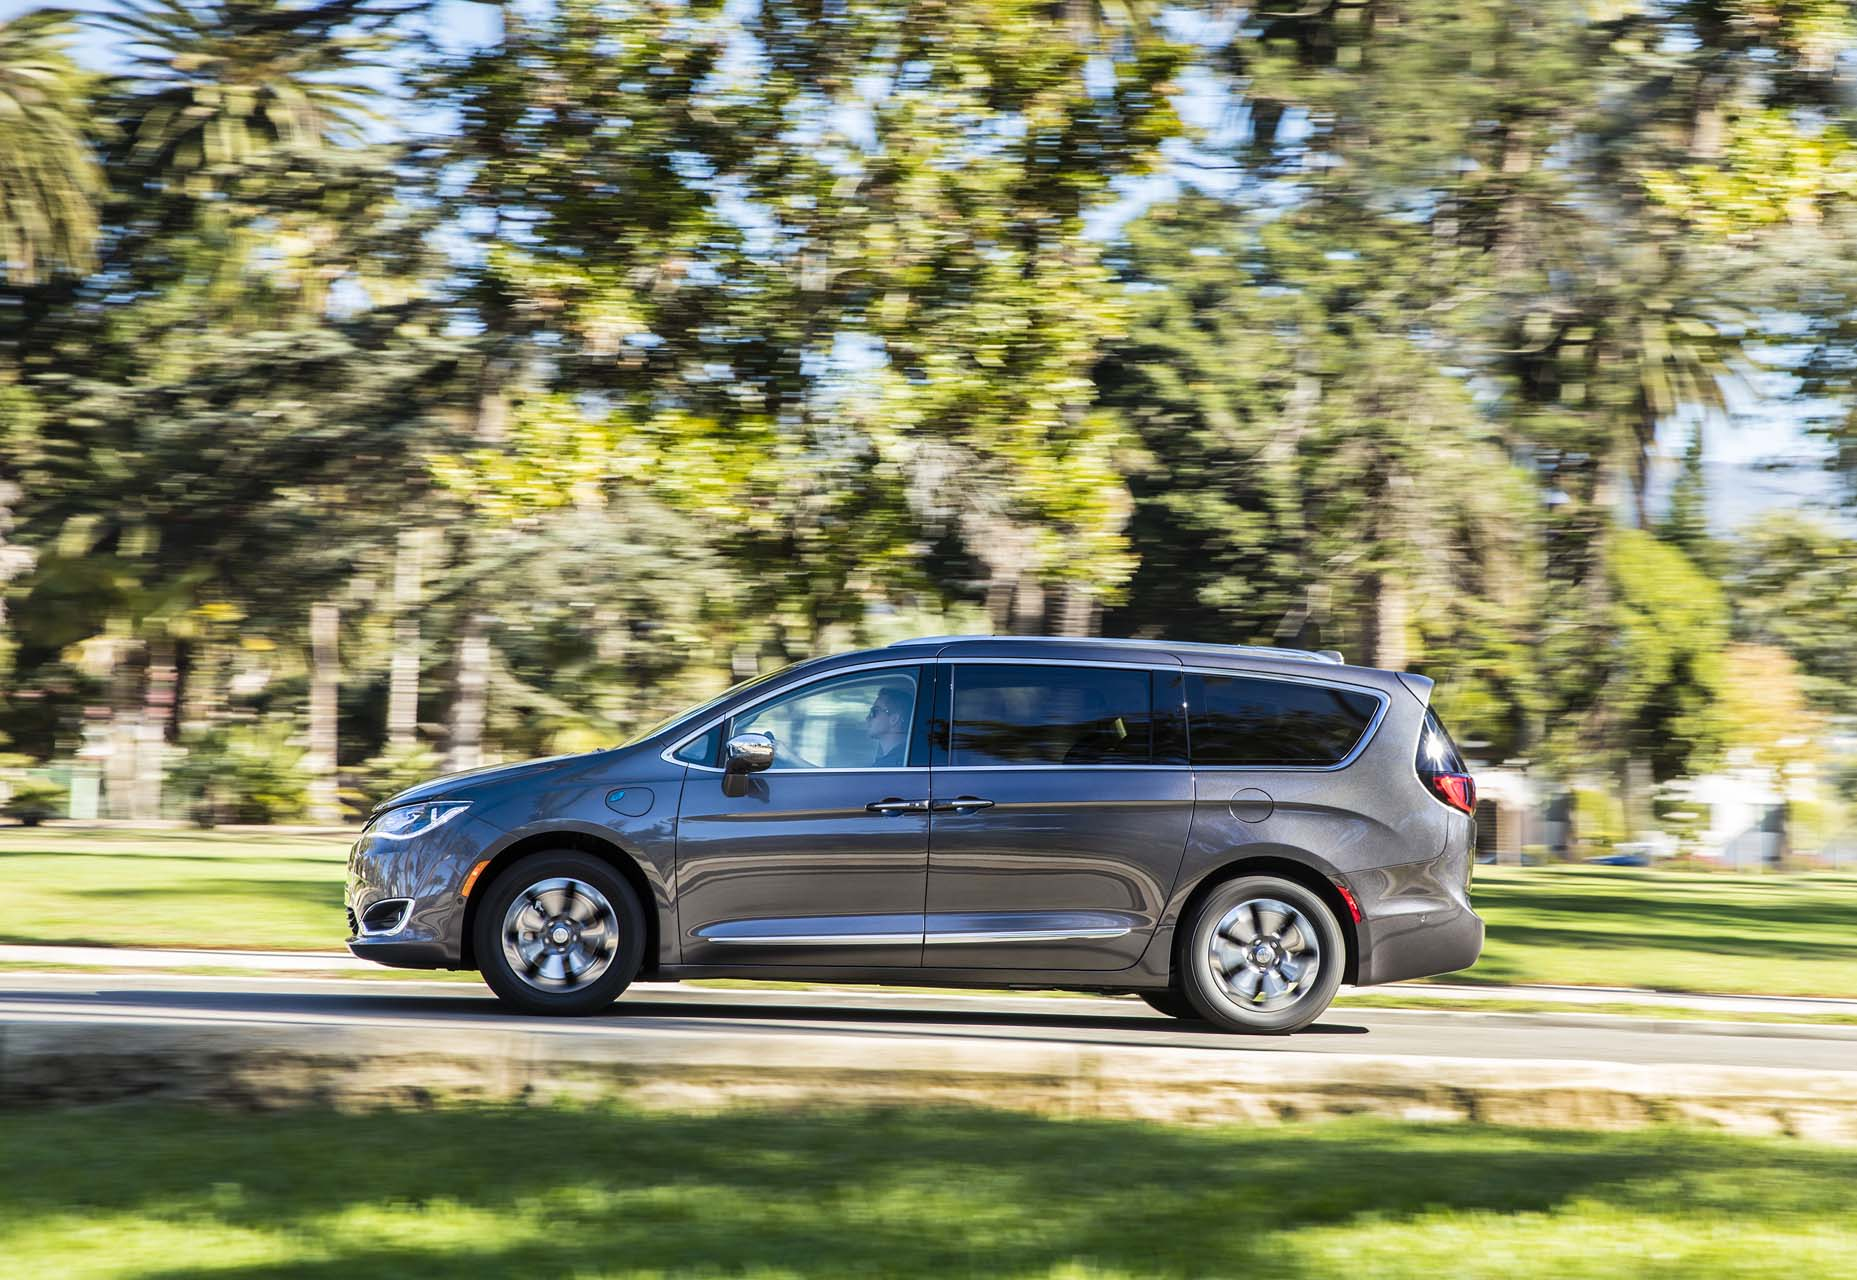 2017 chrysler pacifica hybrid review ratings specs. Black Bedroom Furniture Sets. Home Design Ideas